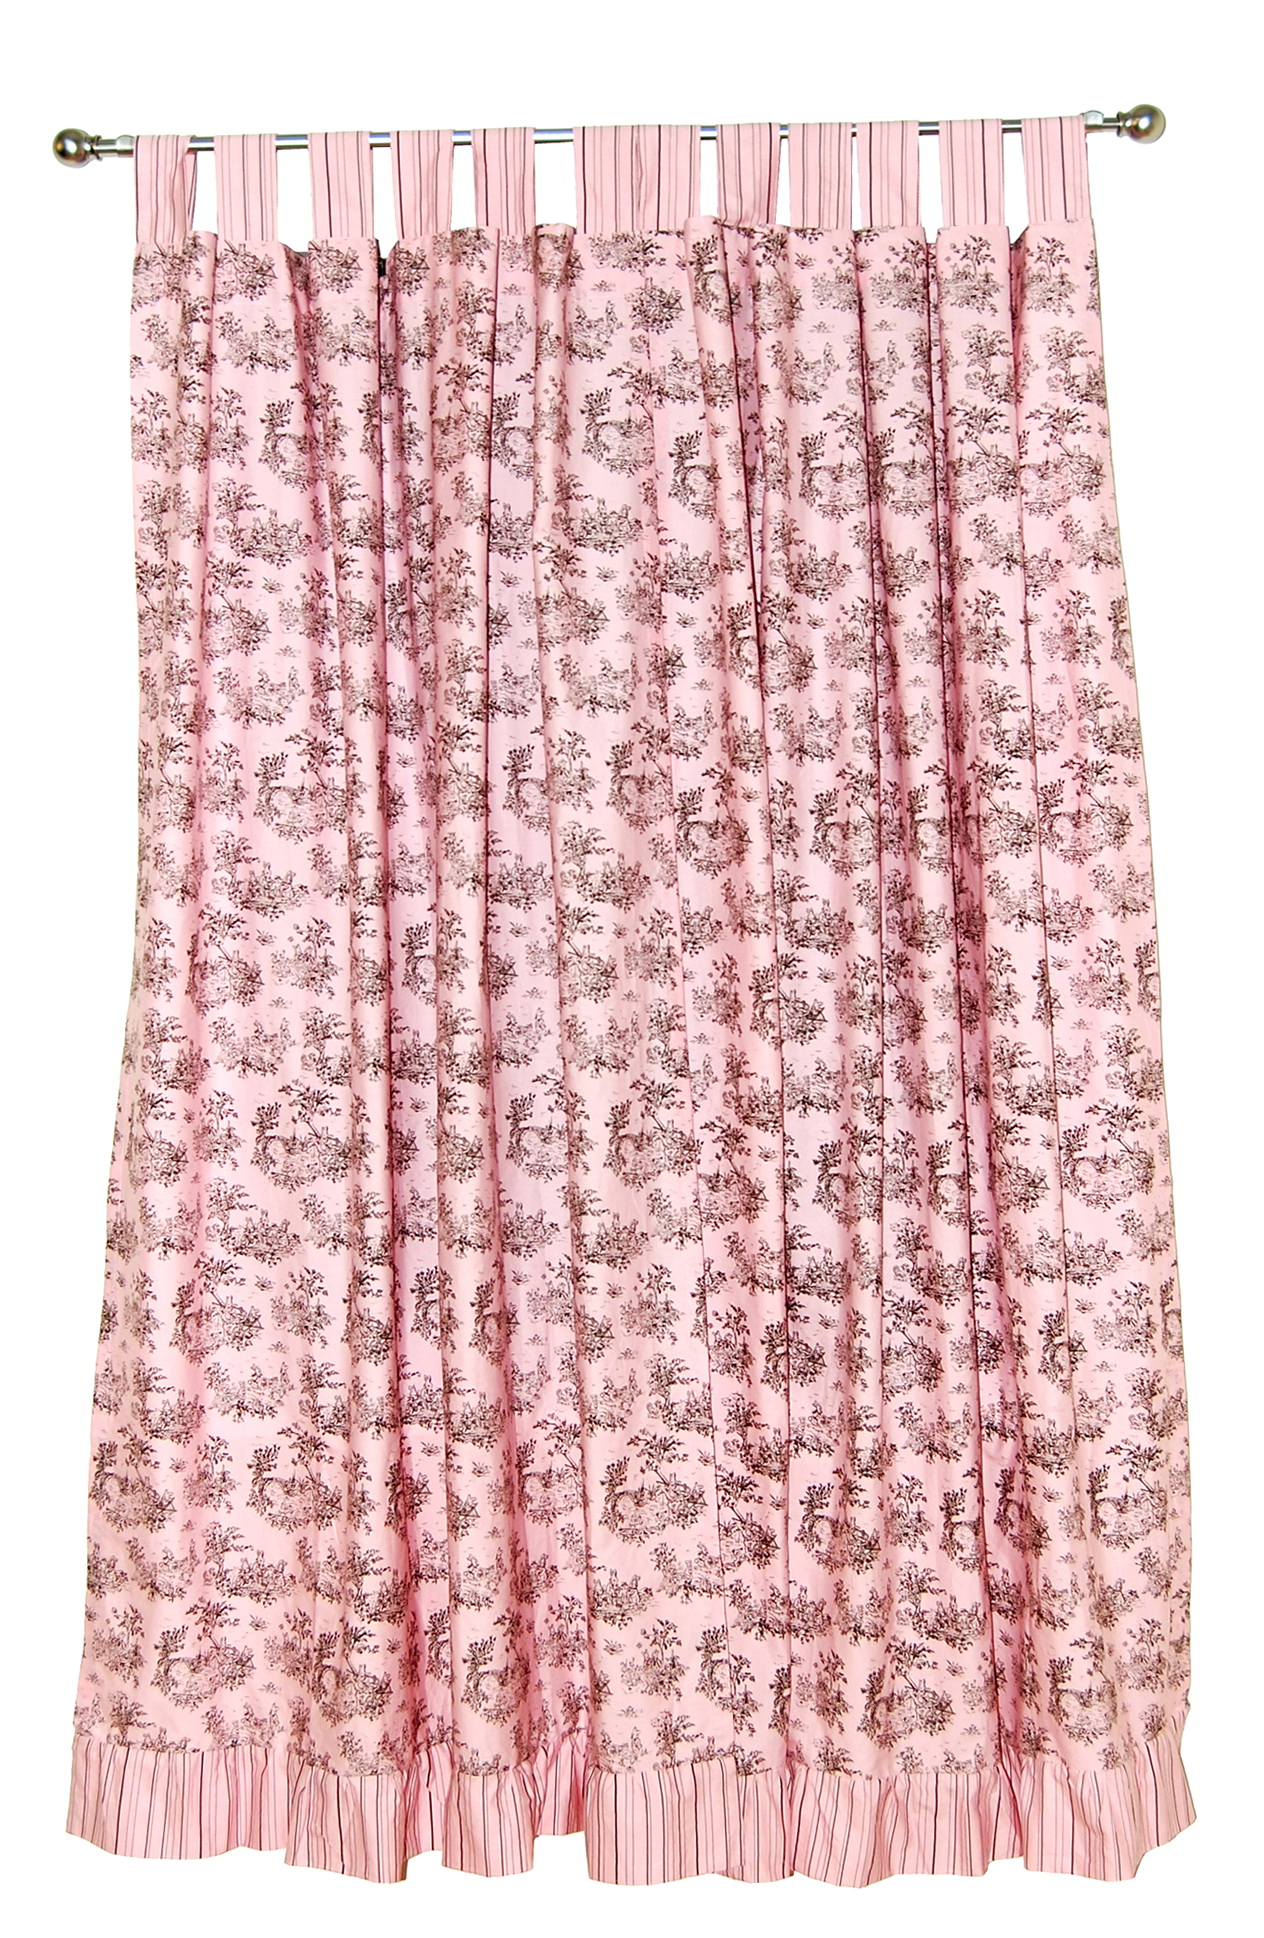 Vorhang Rosa Braun Pink And Brown Curtain Panels | Home Design Ideas